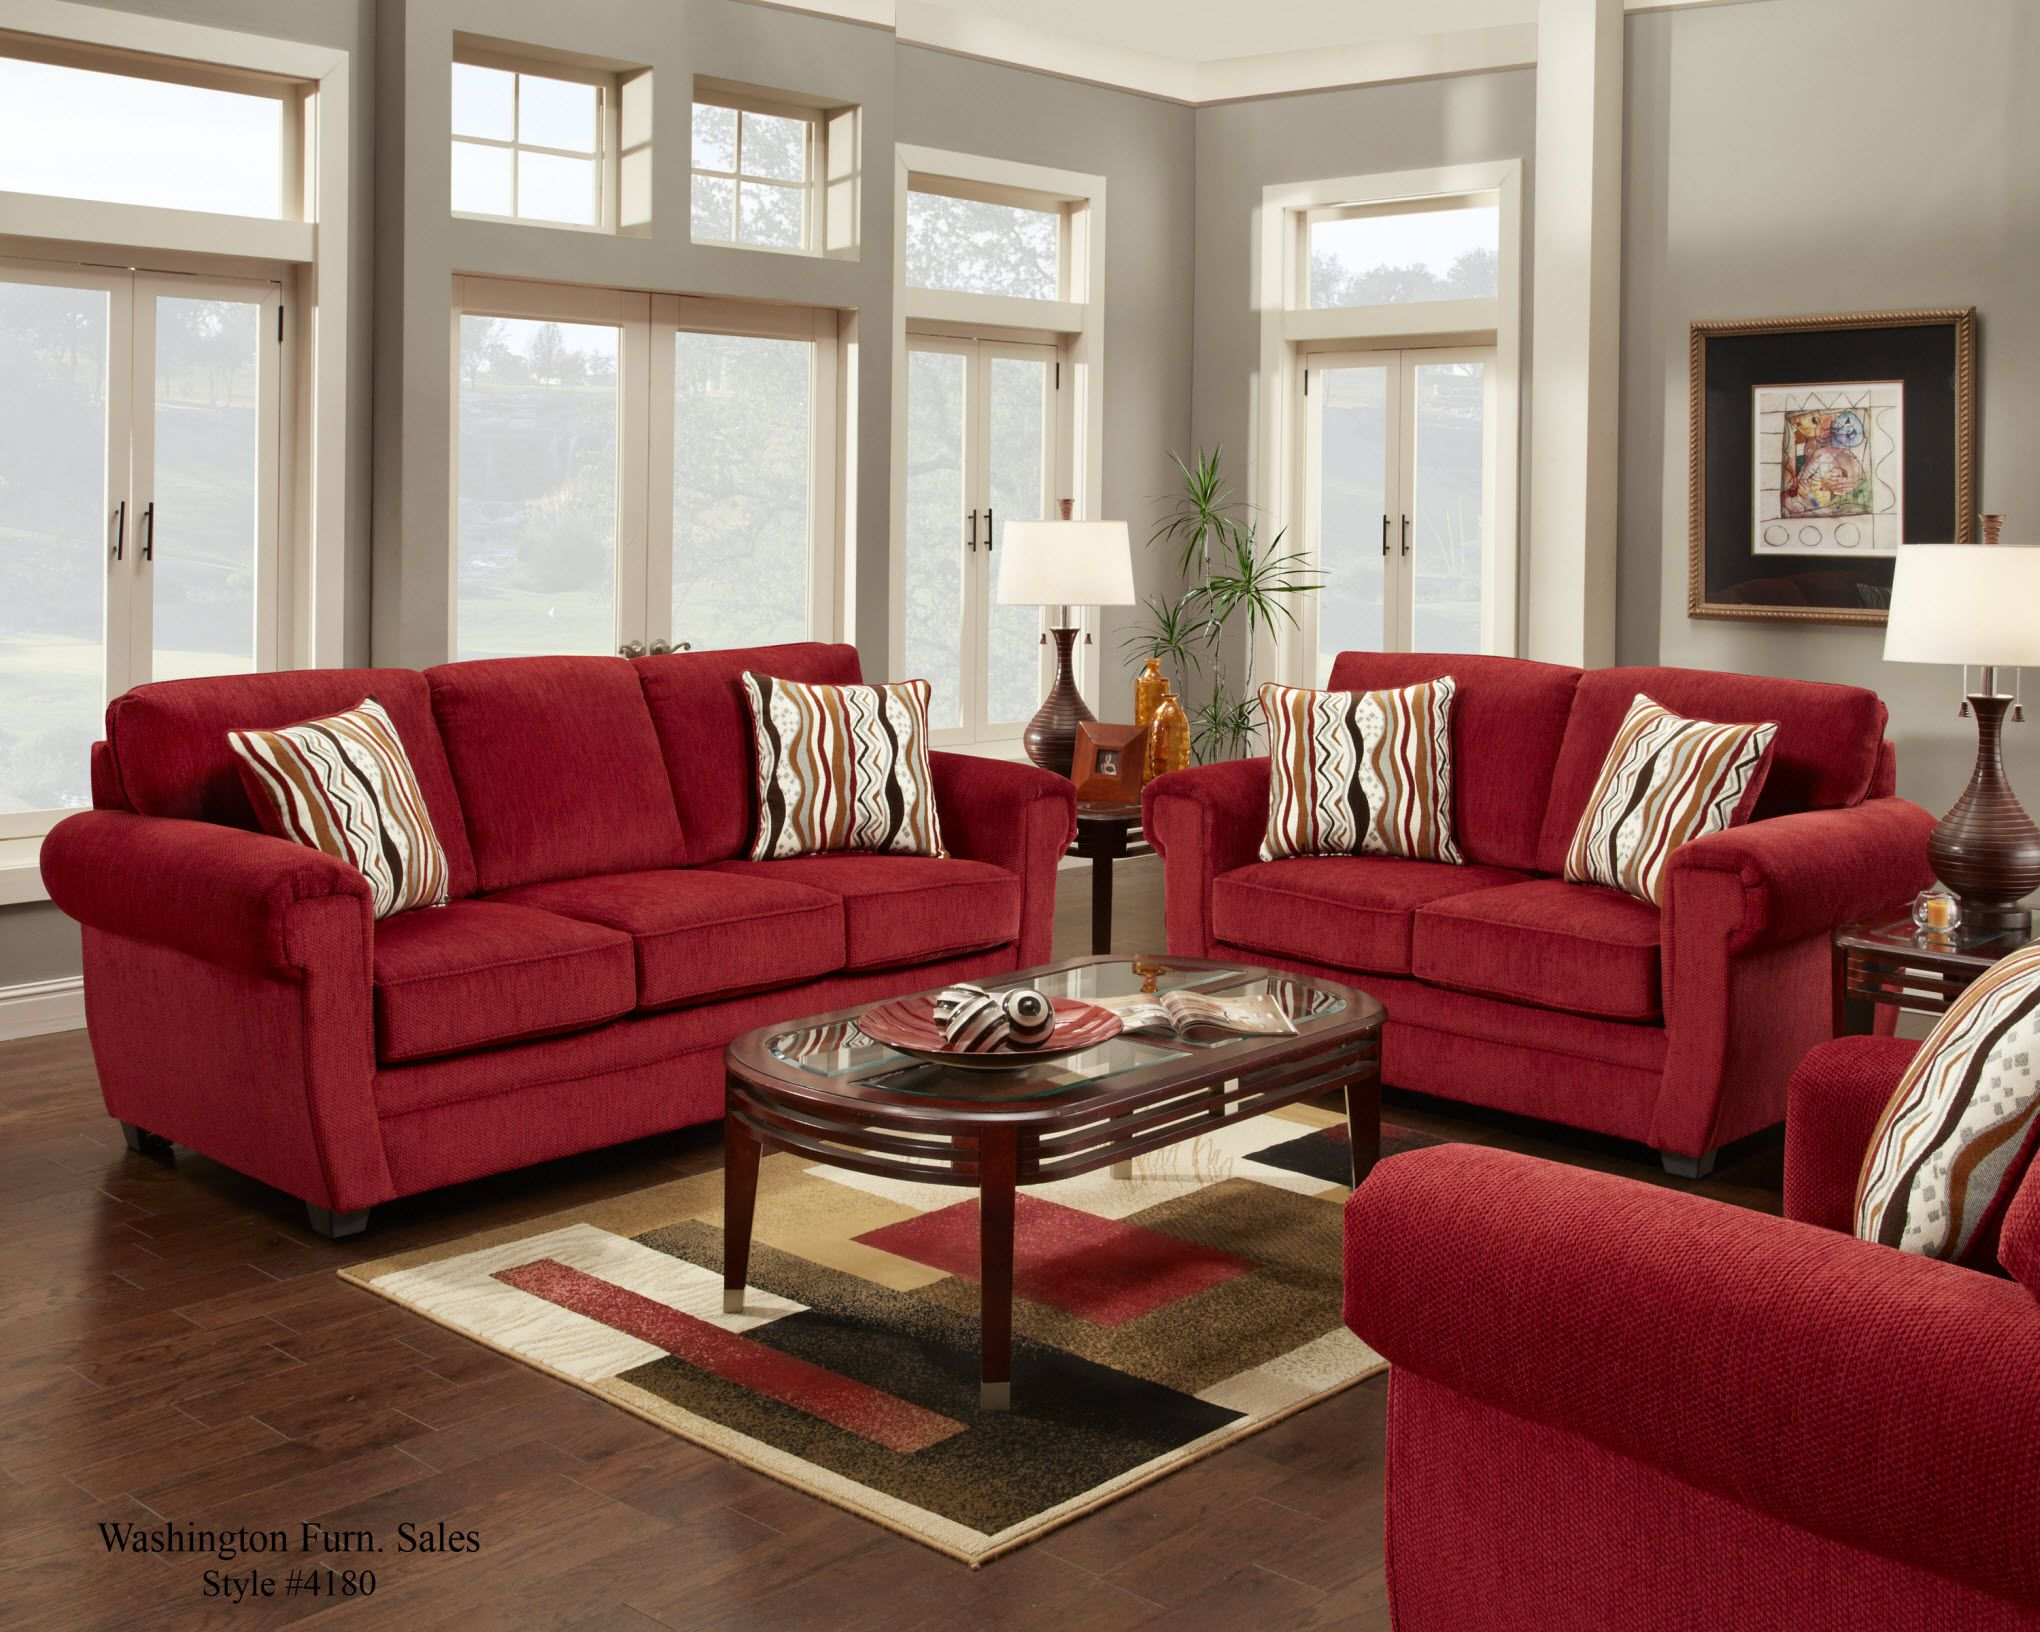 4180 washington samson red sofa and loveseat www Red accents for living room